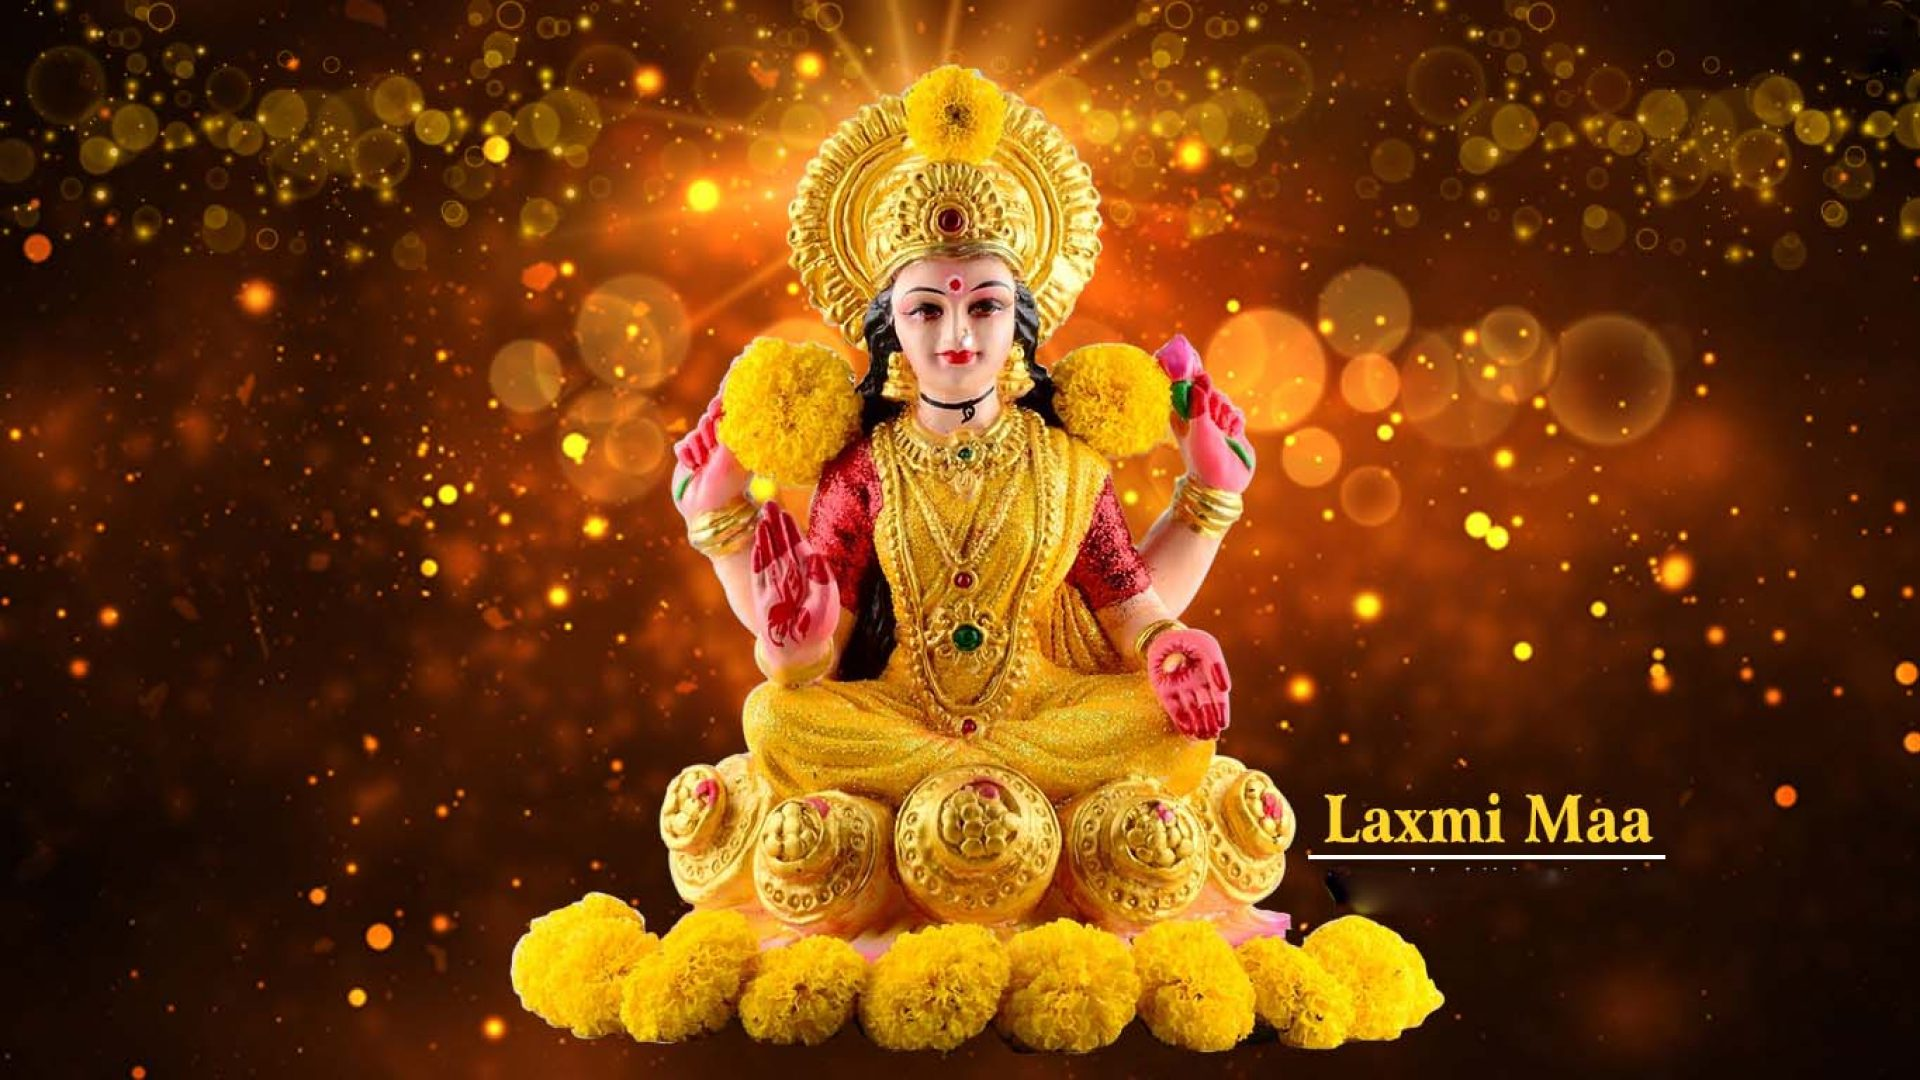 Lakshmi Devi With Gold 1920x1080 Wallpaper Teahub Io